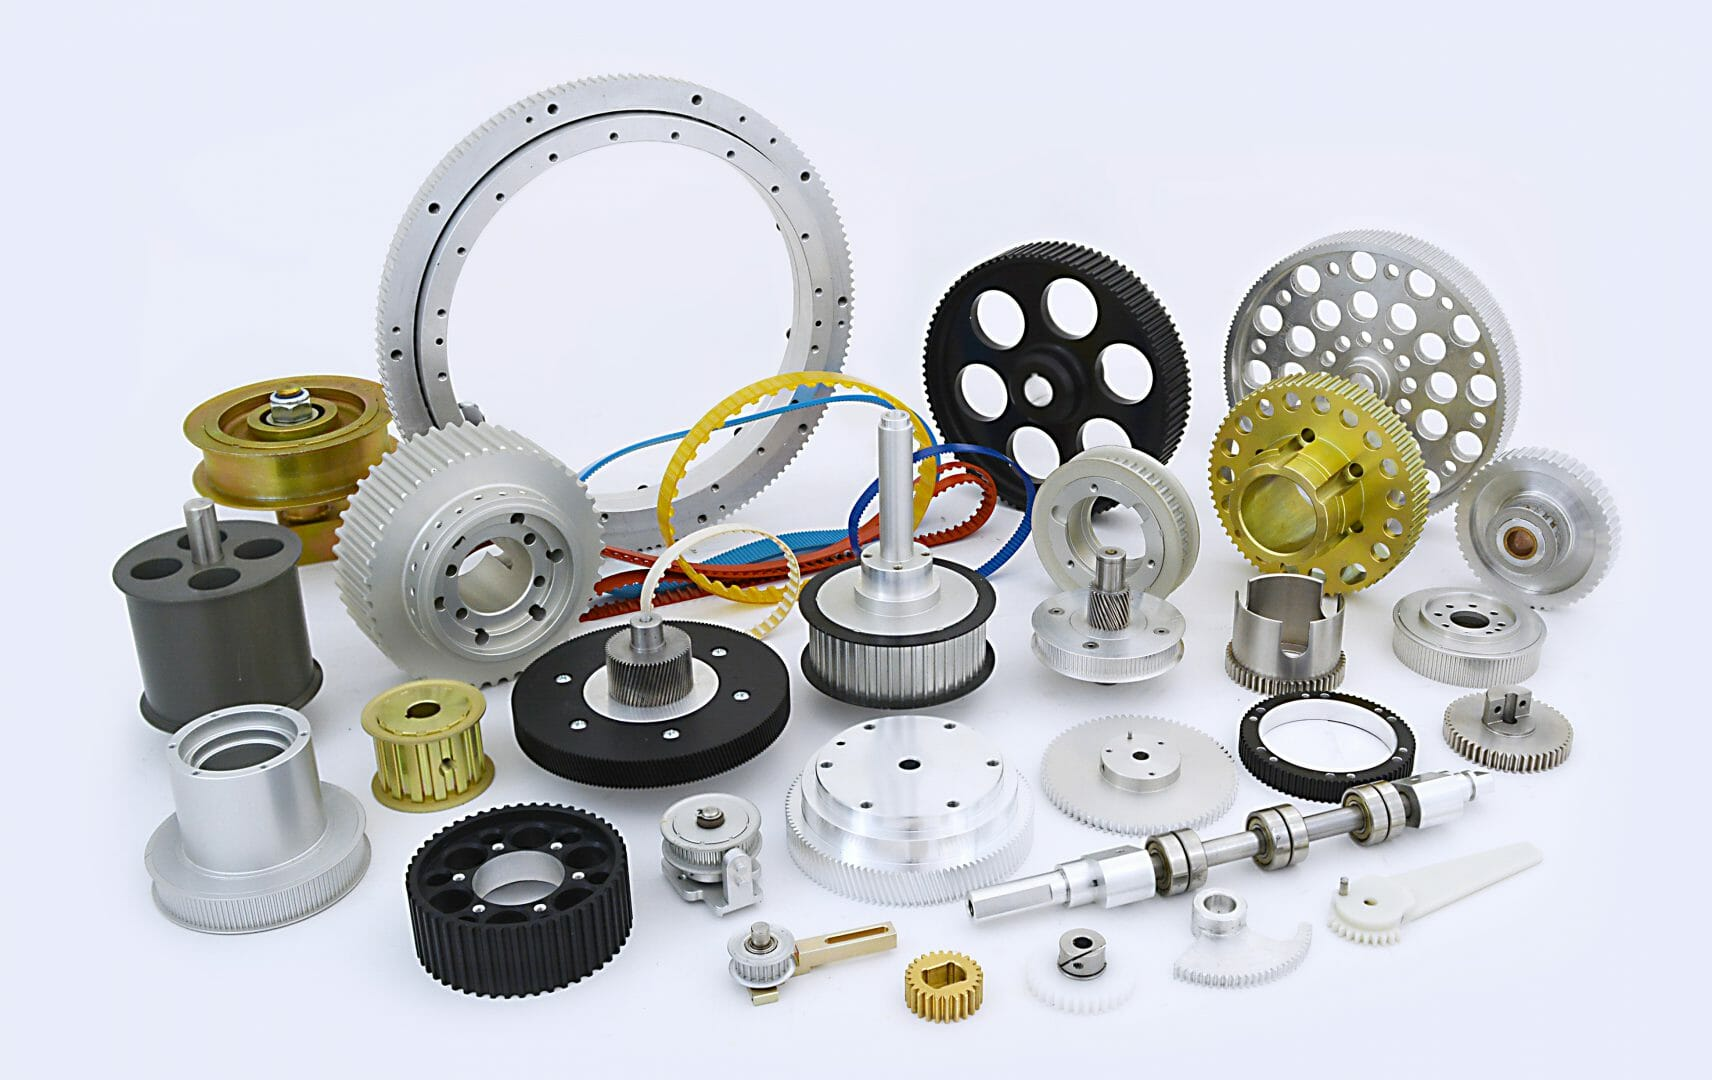 Pulleys gears and belt assembled in a group